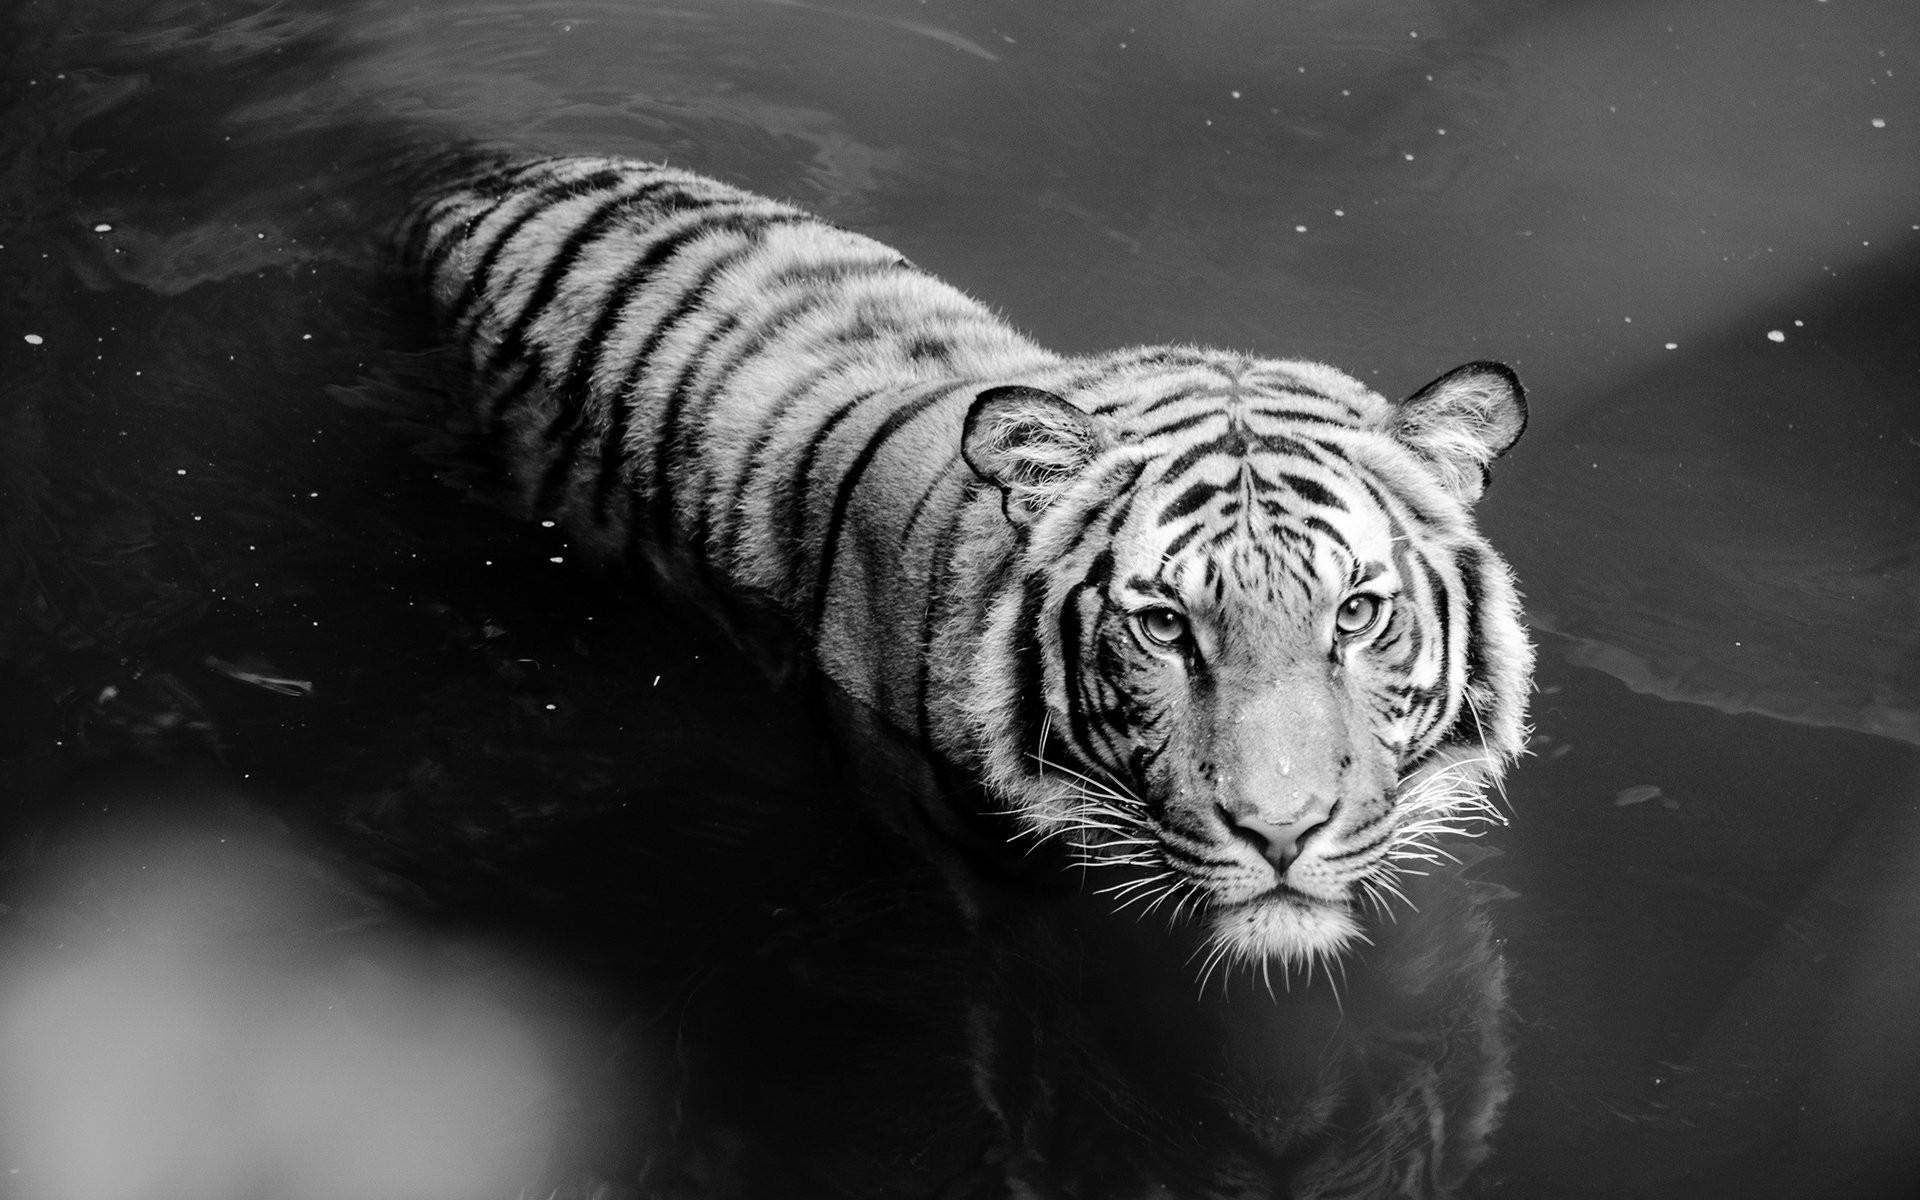 White tiger wallpaper hd 59 pictures - Tiger hd wallpaper for pc ...